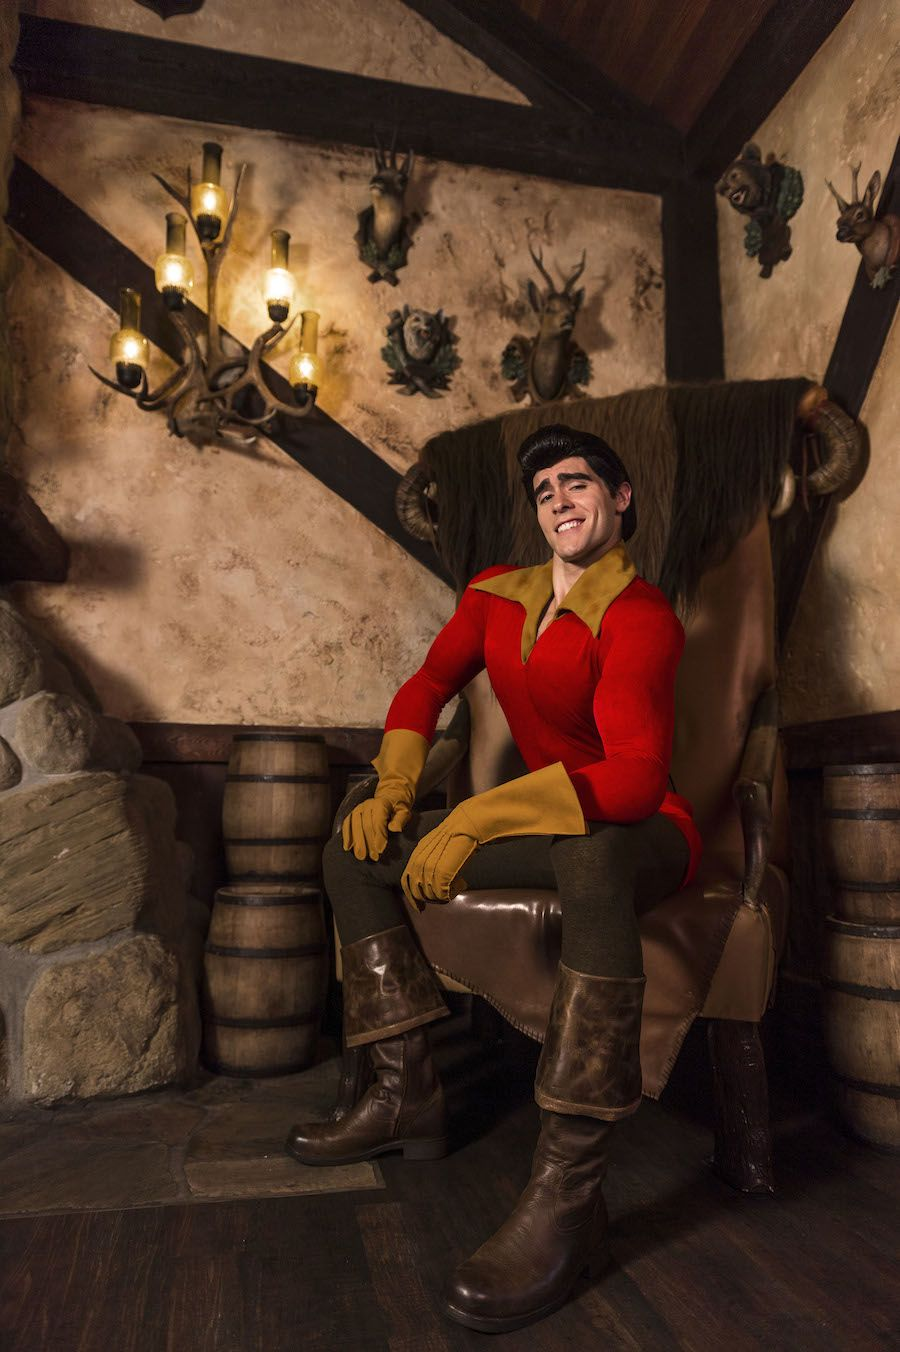 Villains gallery gaston from beauty and the beast pinterest boastful and proud gaston earned his place as a true disney villain in beauty and the beast click through to read see more photos publicscrutiny Gallery